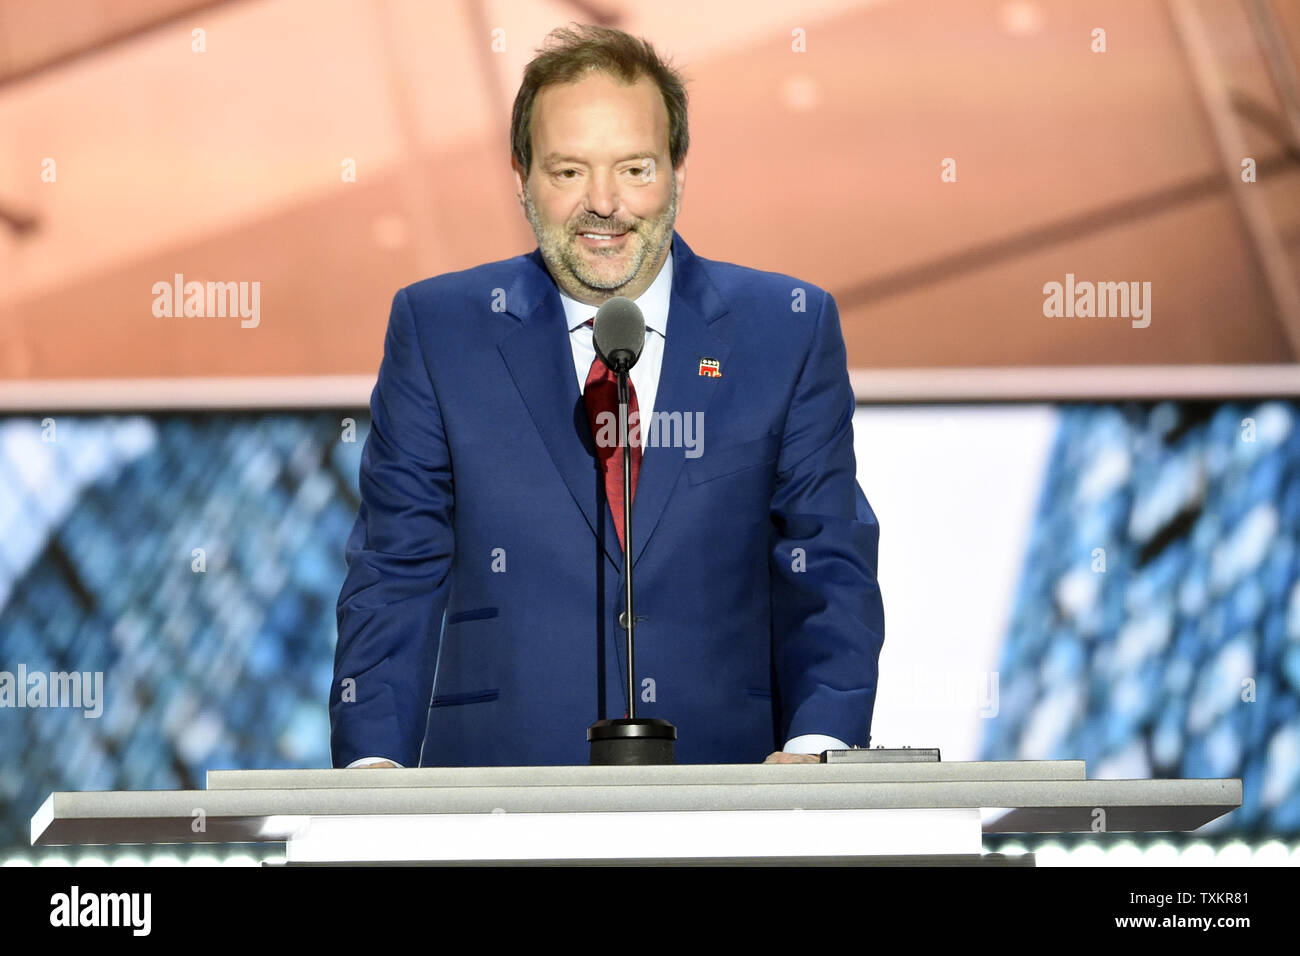 Andy Wist, founder of the Standard Waterproofing Company, speaking on day two of the Republican National Convention at Quicken Loans Arena in Cleveland, Ohio on July 19, 2016. Donald Trump will formally accept the Republican Party's nomination for President on Thursday night July 21st. Photo by Pete Marovich/UPI - Stock Image